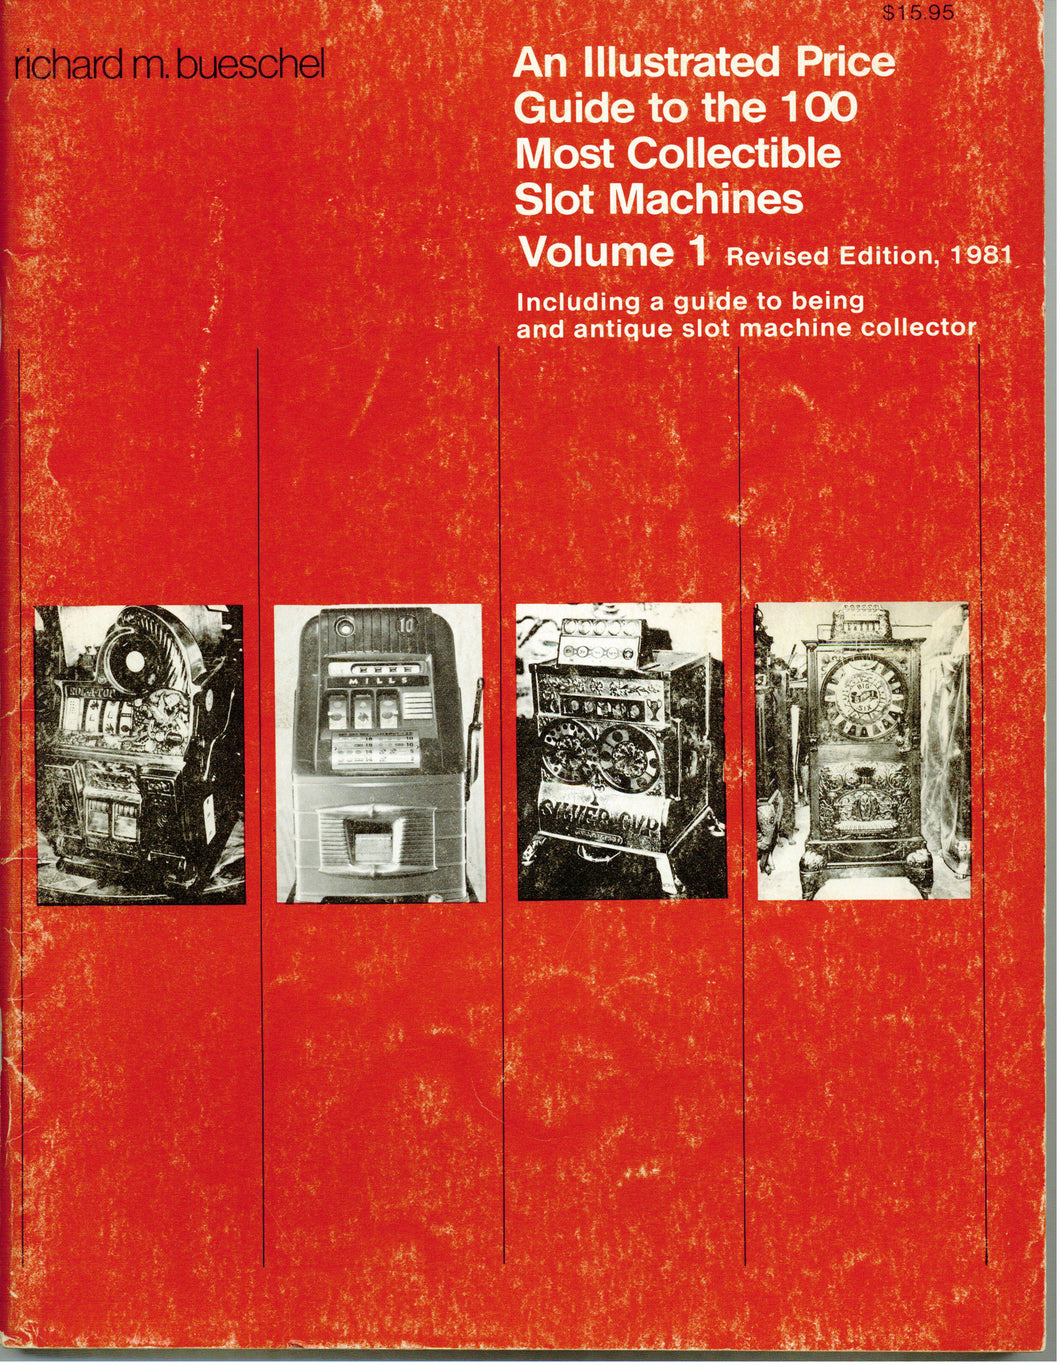 ZZ - Slots 1: Illustrated Price Guide to 100 Most Collectible Slot Machines, Volume 1 Revised